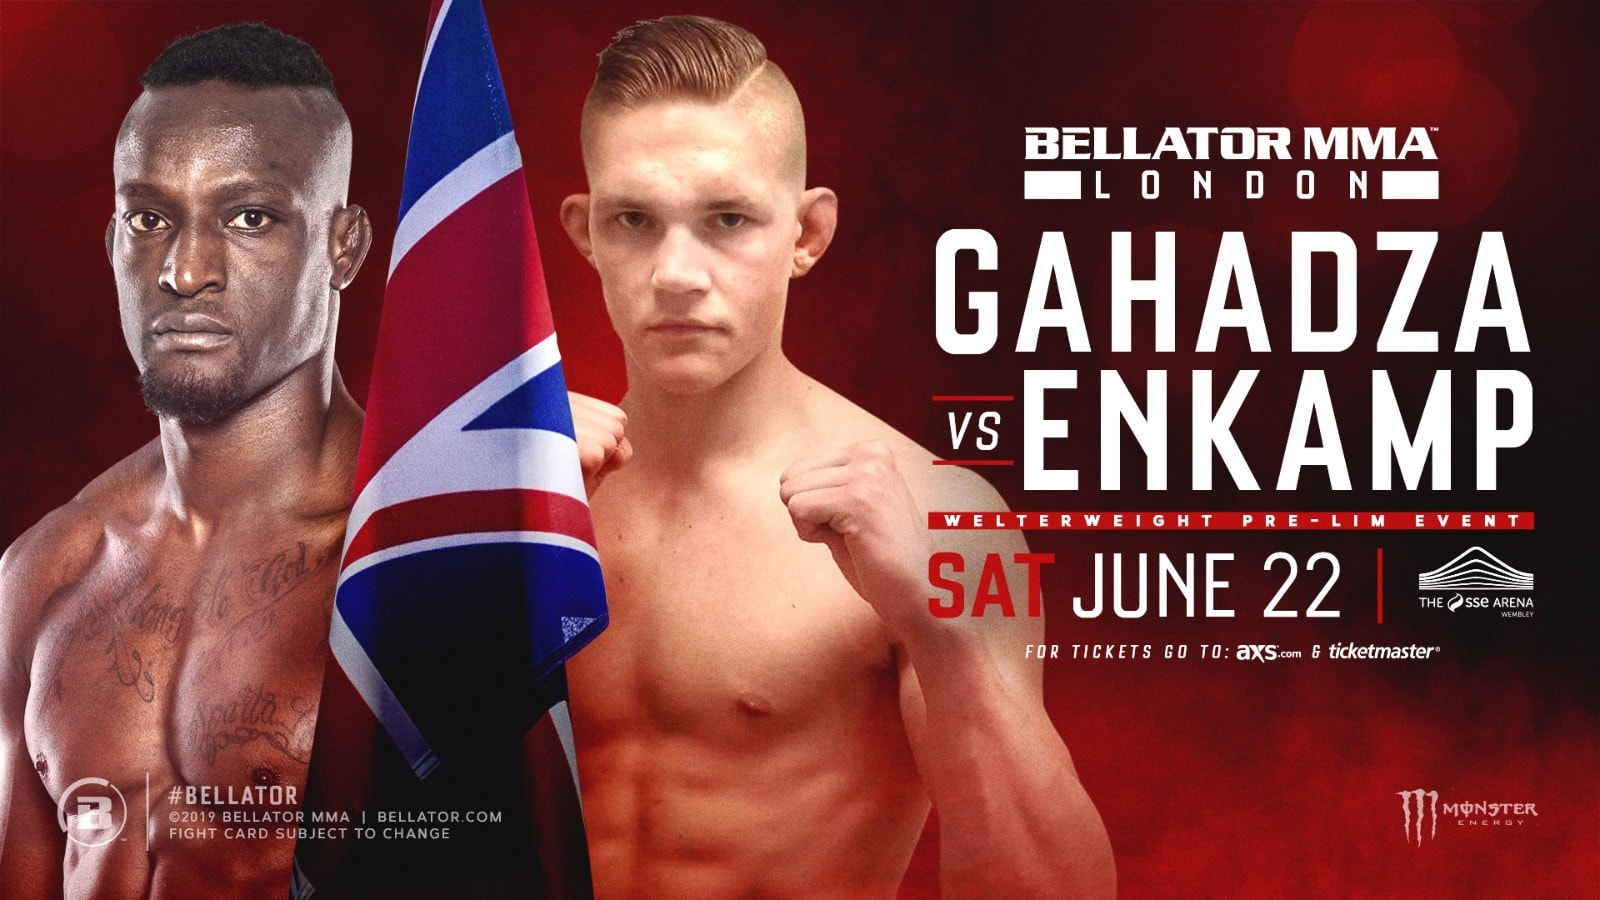 Enkamp at Bellator London